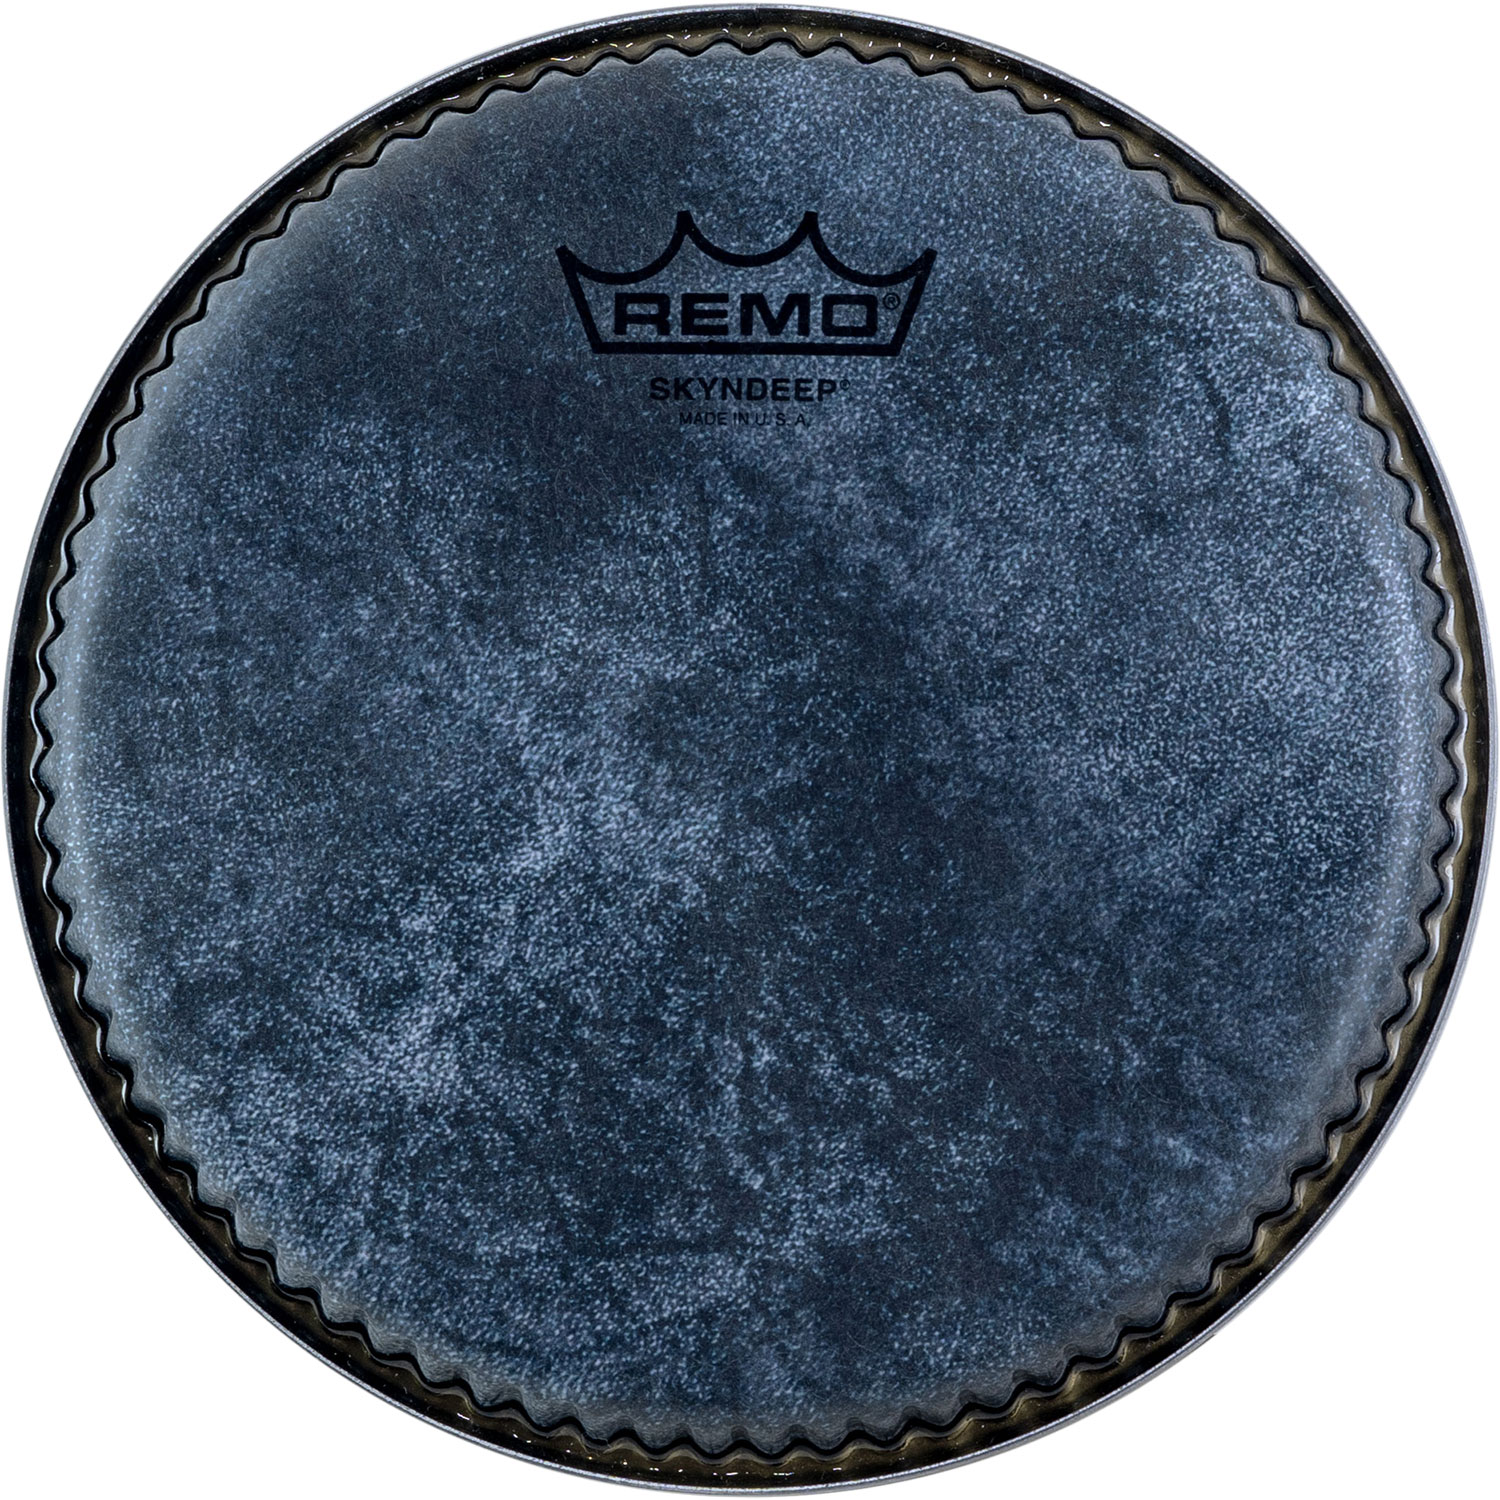 """Remo 7.15"""" R-Series Low Collar Skyndeep Bongo Head with Black Calfskin Graphic"""